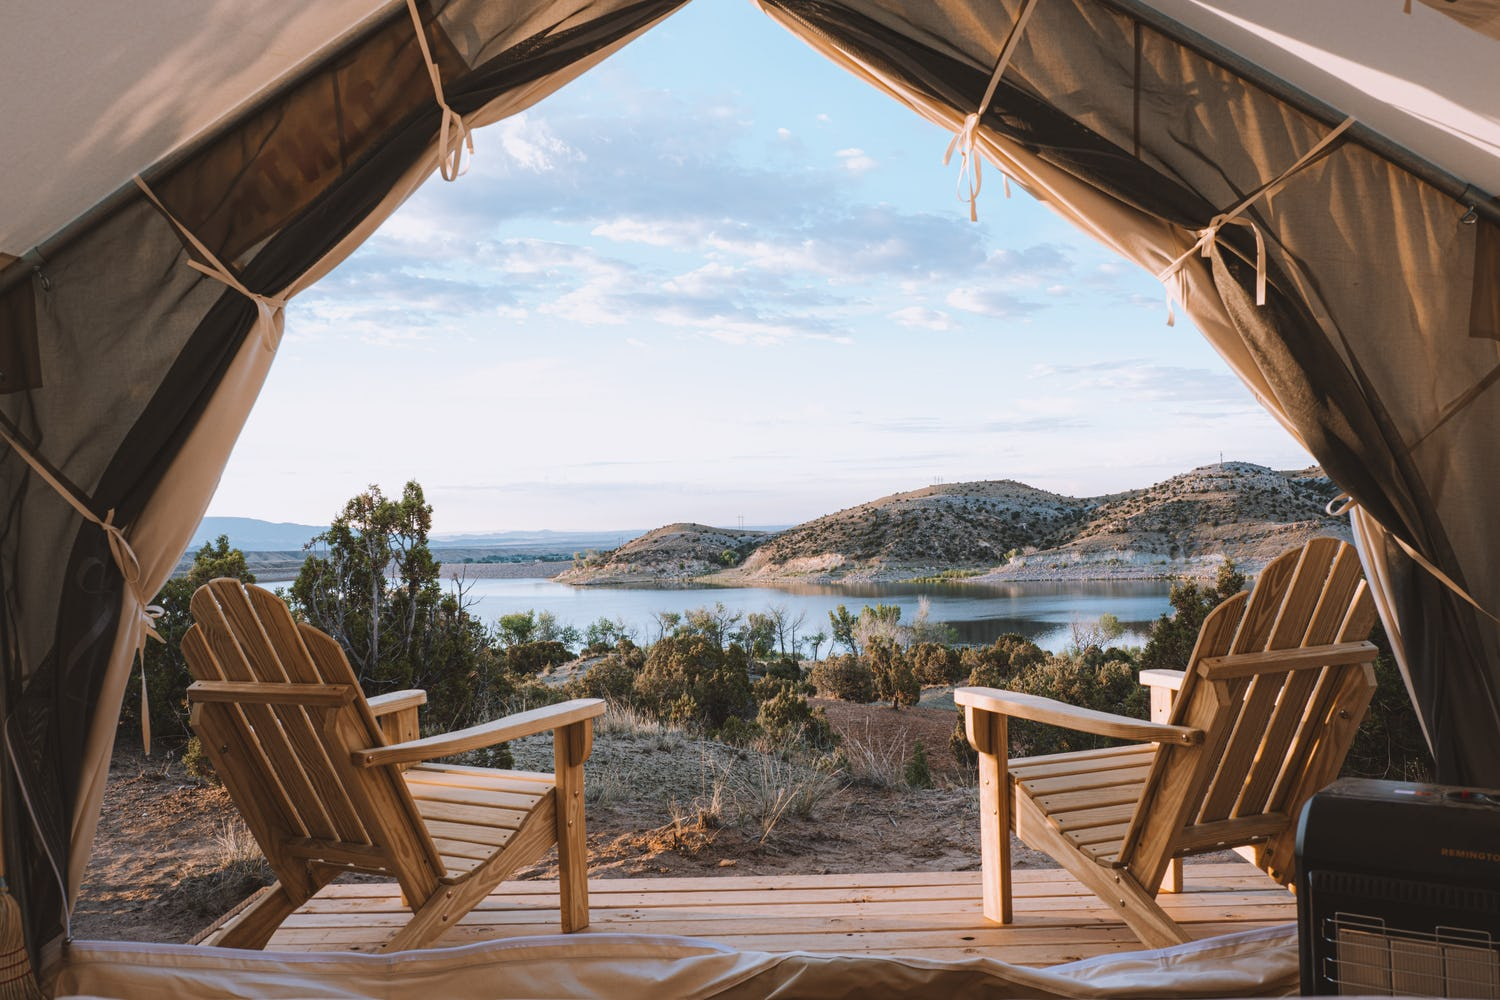 The Best Lakeside Glamping Spots to Visit This Summer